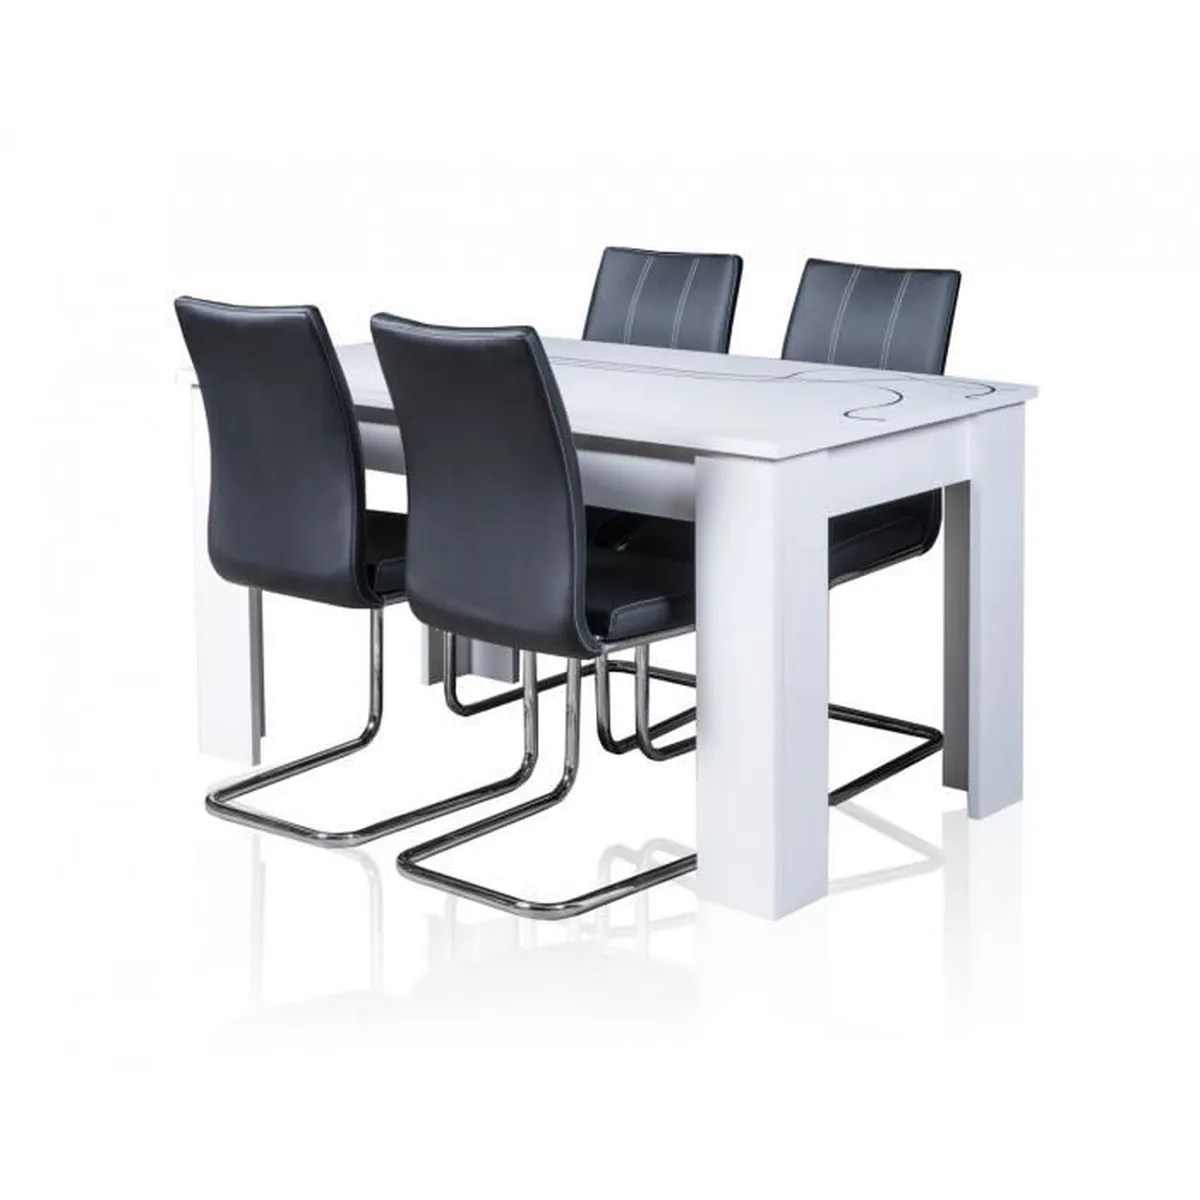 Table Et Chaise Cdiscount Cdiscount Table Chaise Maison Design Wiblia